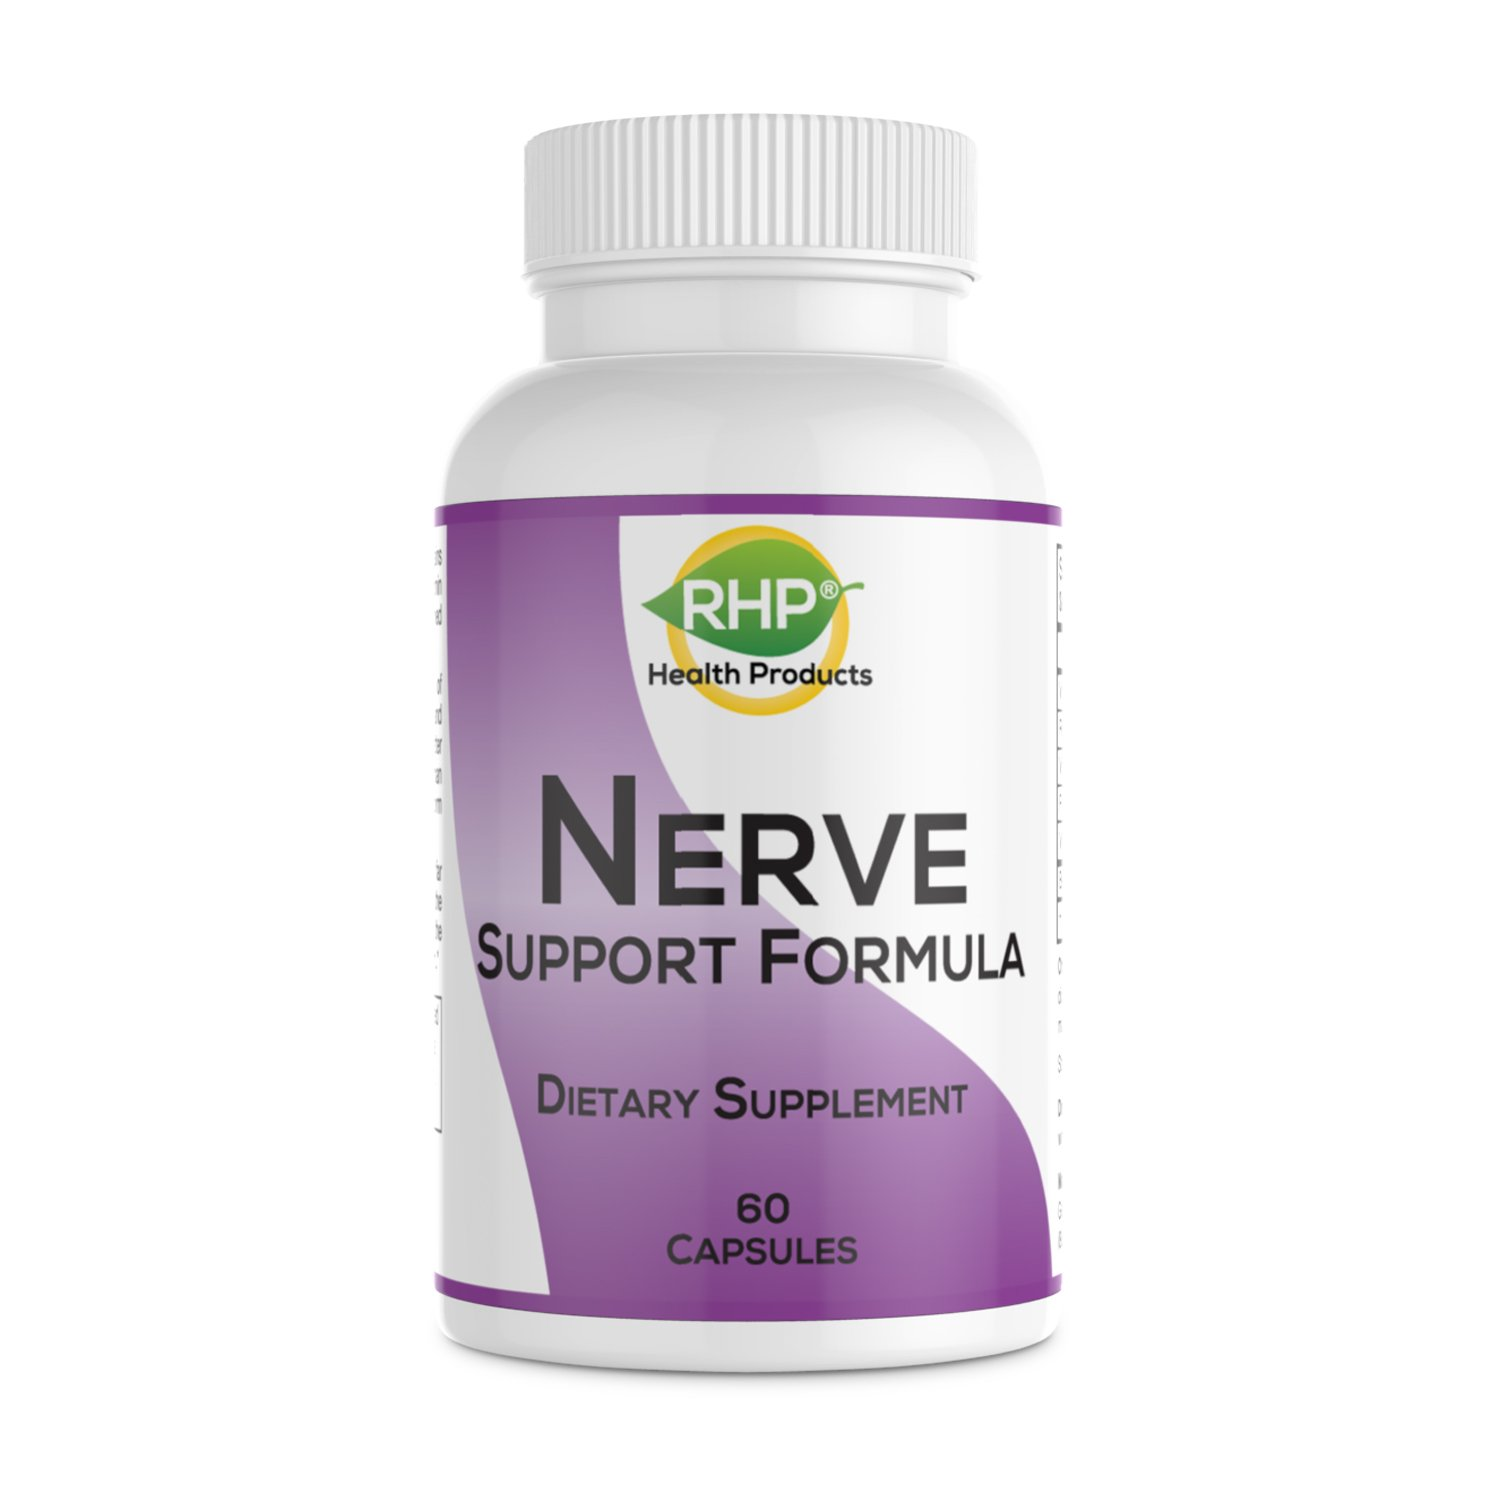 Nerve Support Formula for the Nutritional Support of Peripheral Neuropathy and Nerve Pain Relief. Extra Strength Capsules by RHP